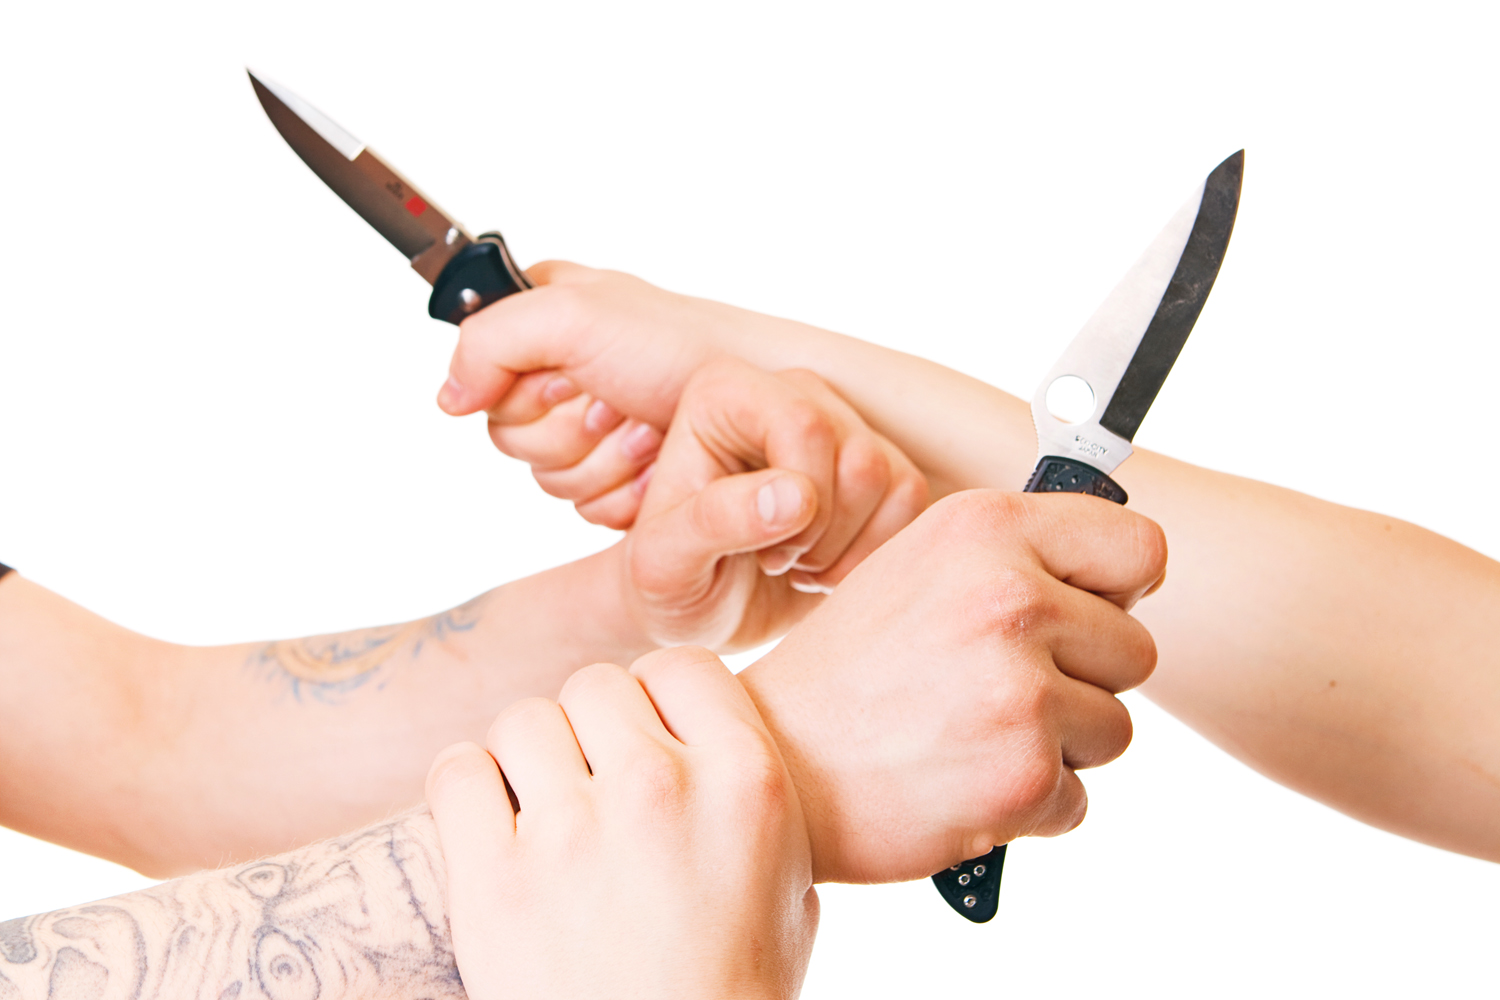 Hands with knives photo